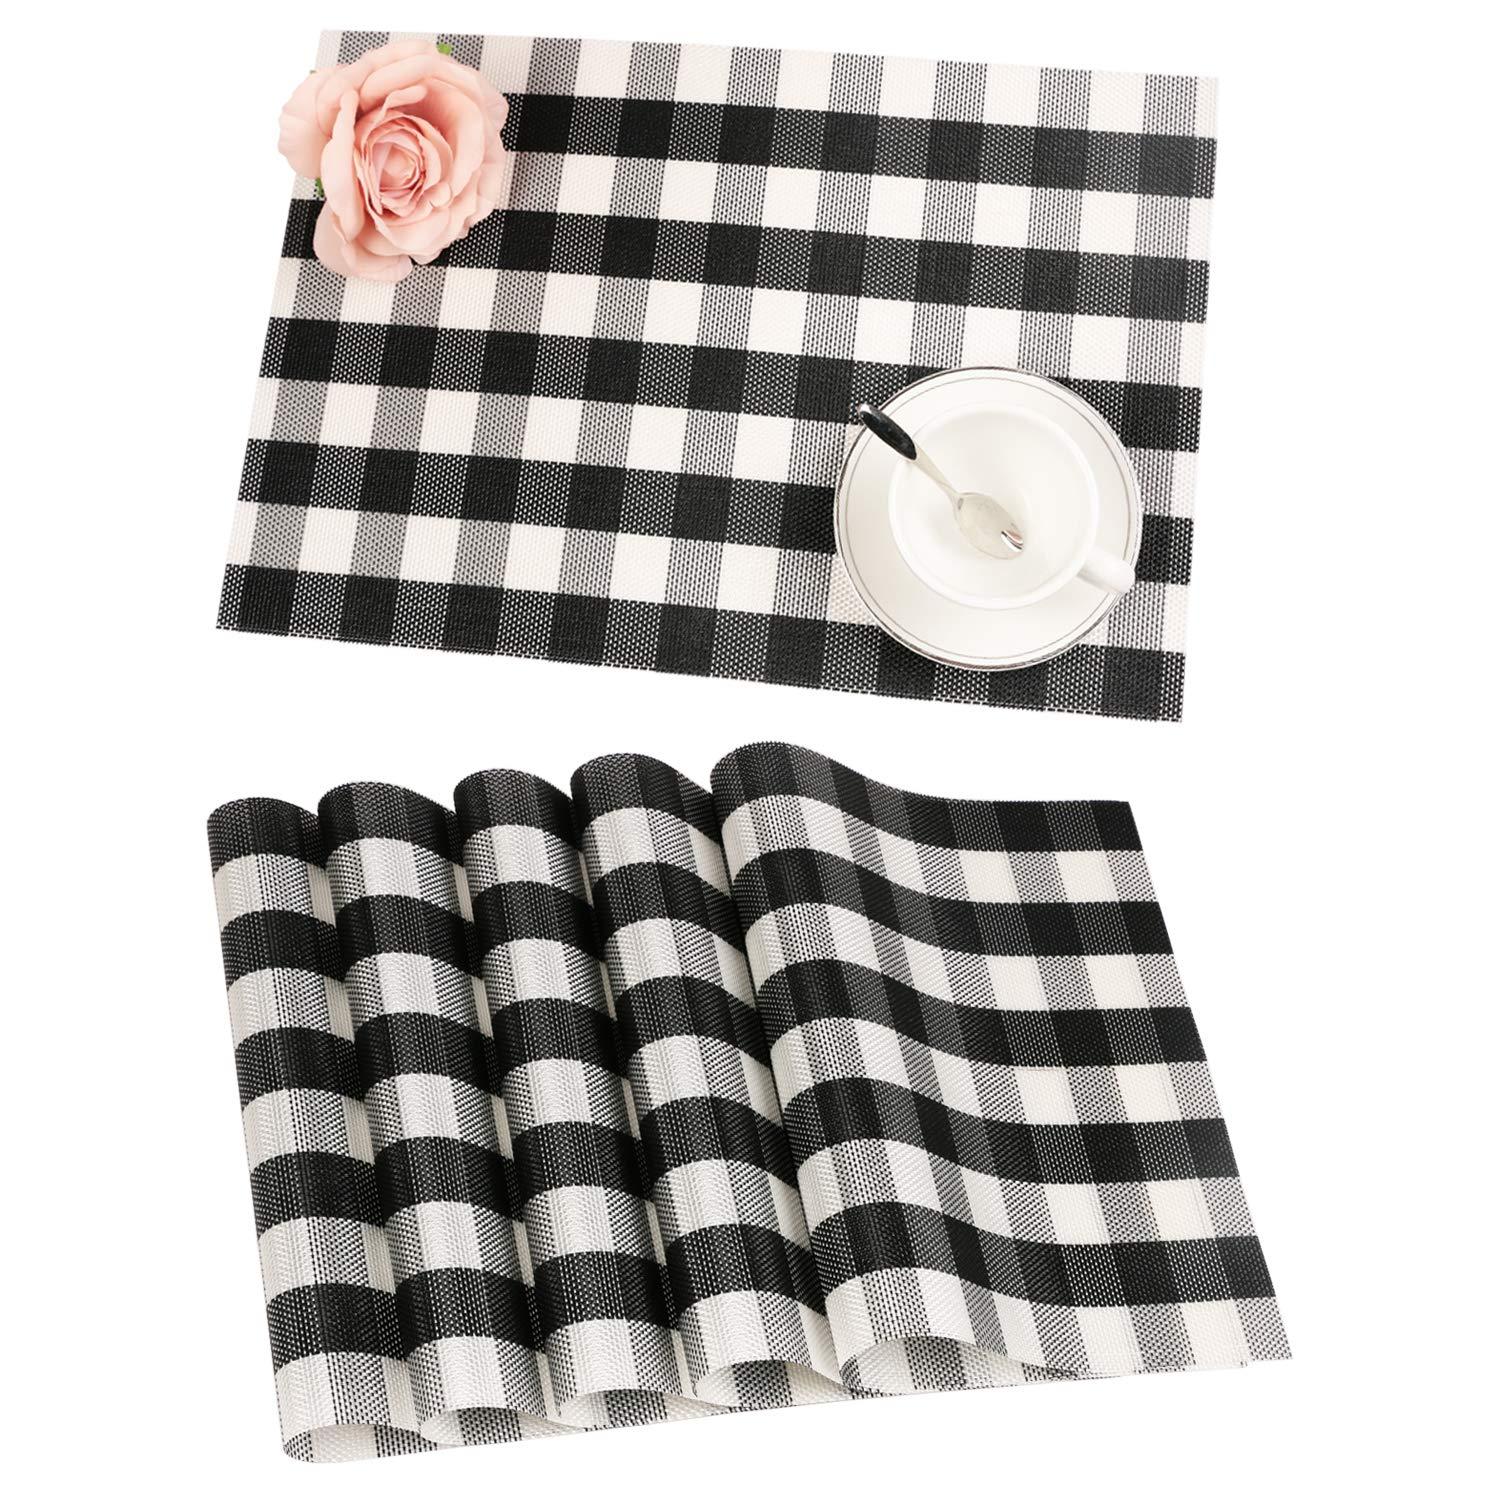 Homcomoda PVC Buffalo Plaid Placemats Set of 6 Black & White Checkered Washable Place Mats for Kitchen Table